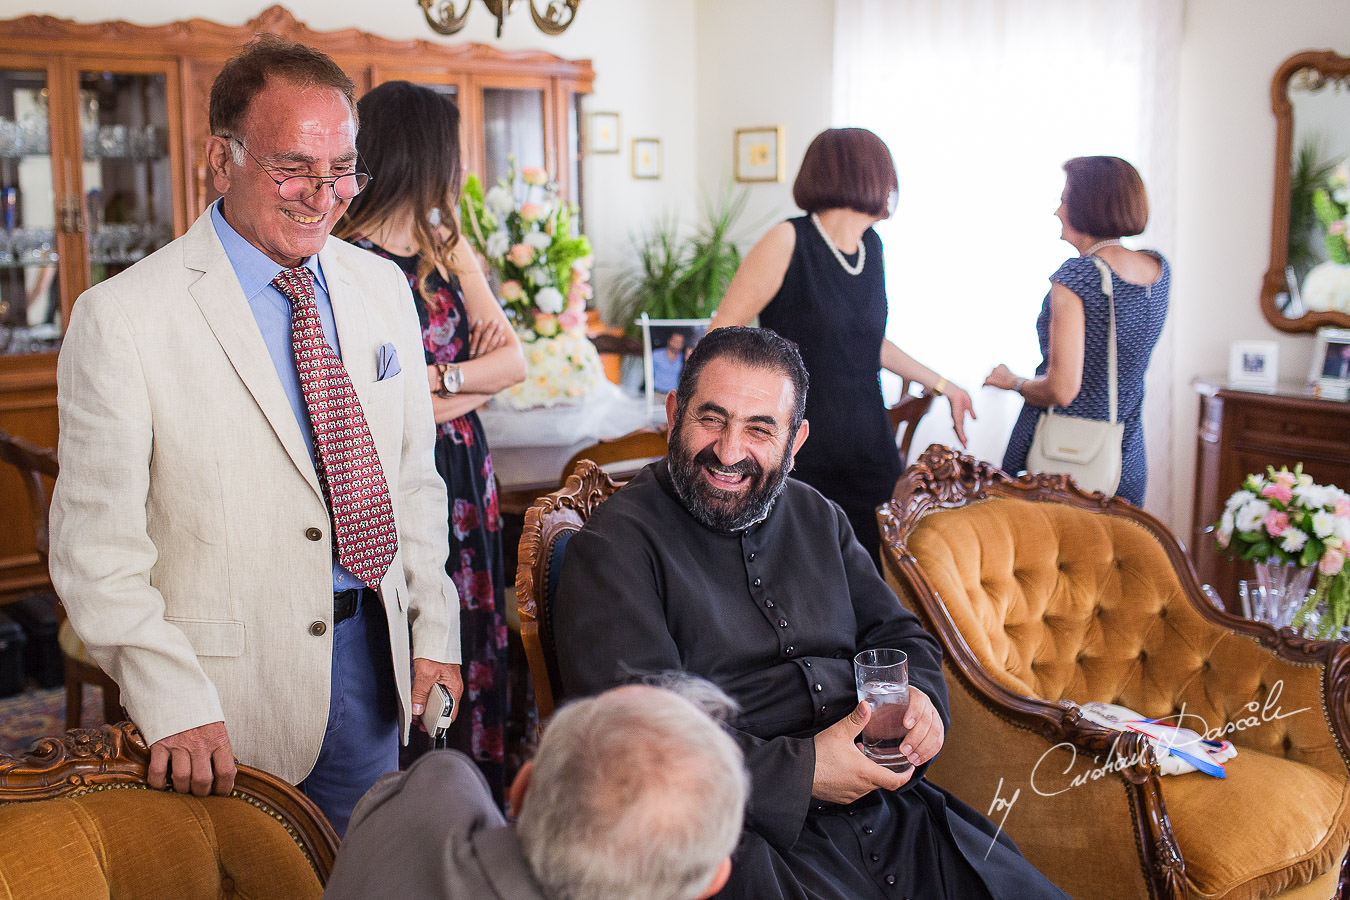 The priest, laughing and joking with wedding guests at the groom's house, captured at a wedding in Cyprus by Photographer Cristian Dascalu.